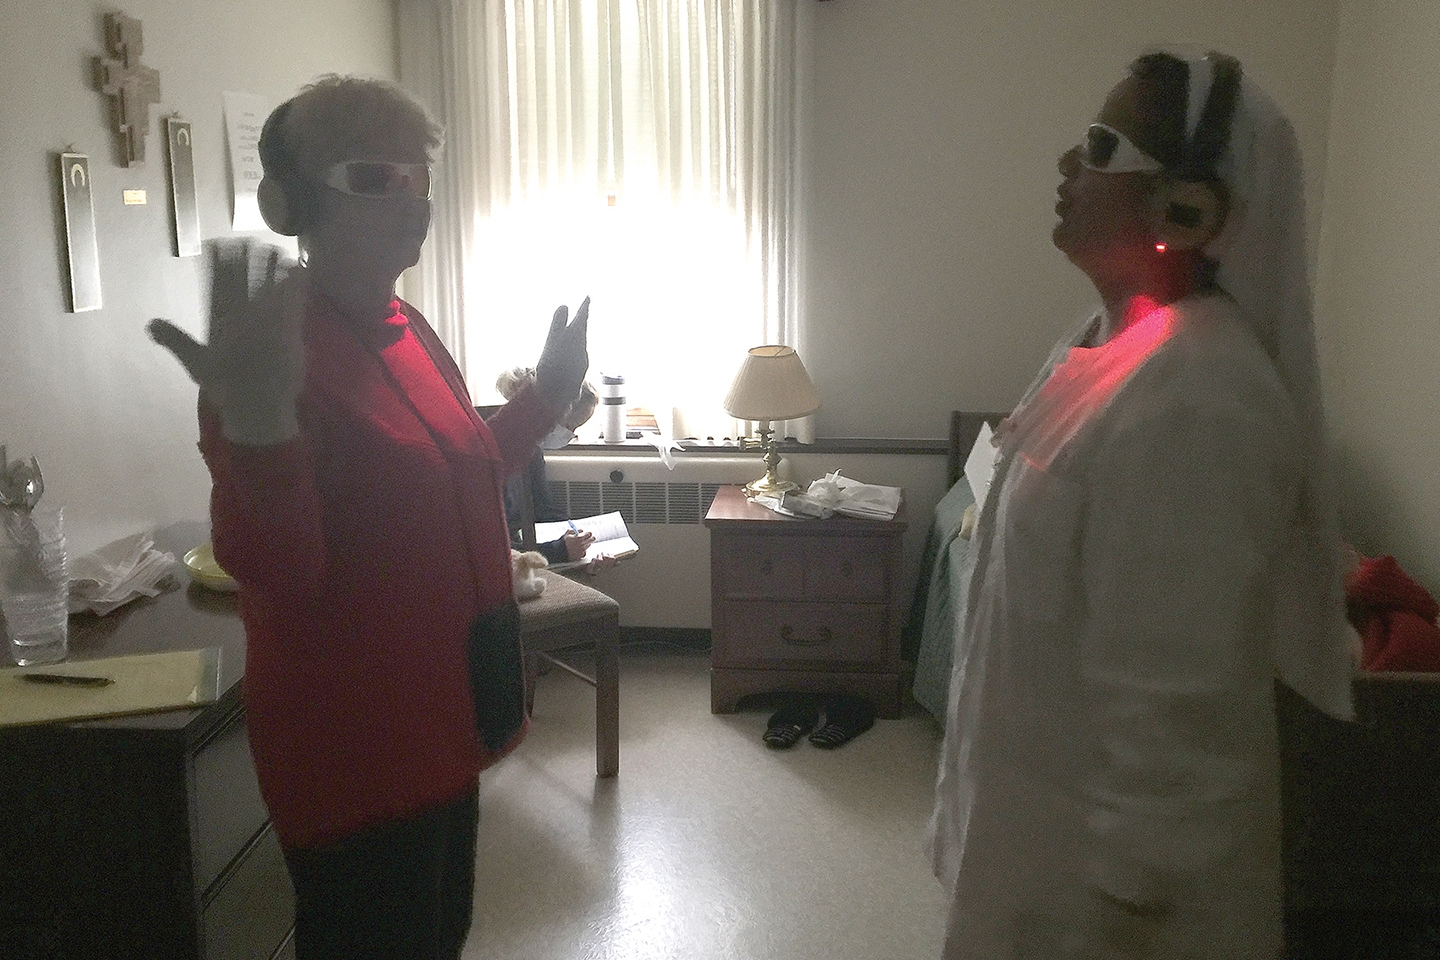 Kate Guay, assistant administrator, and Sister Beena Jose, a nurse in Antonia Hall, take part in the Virtual Dementia Tour.